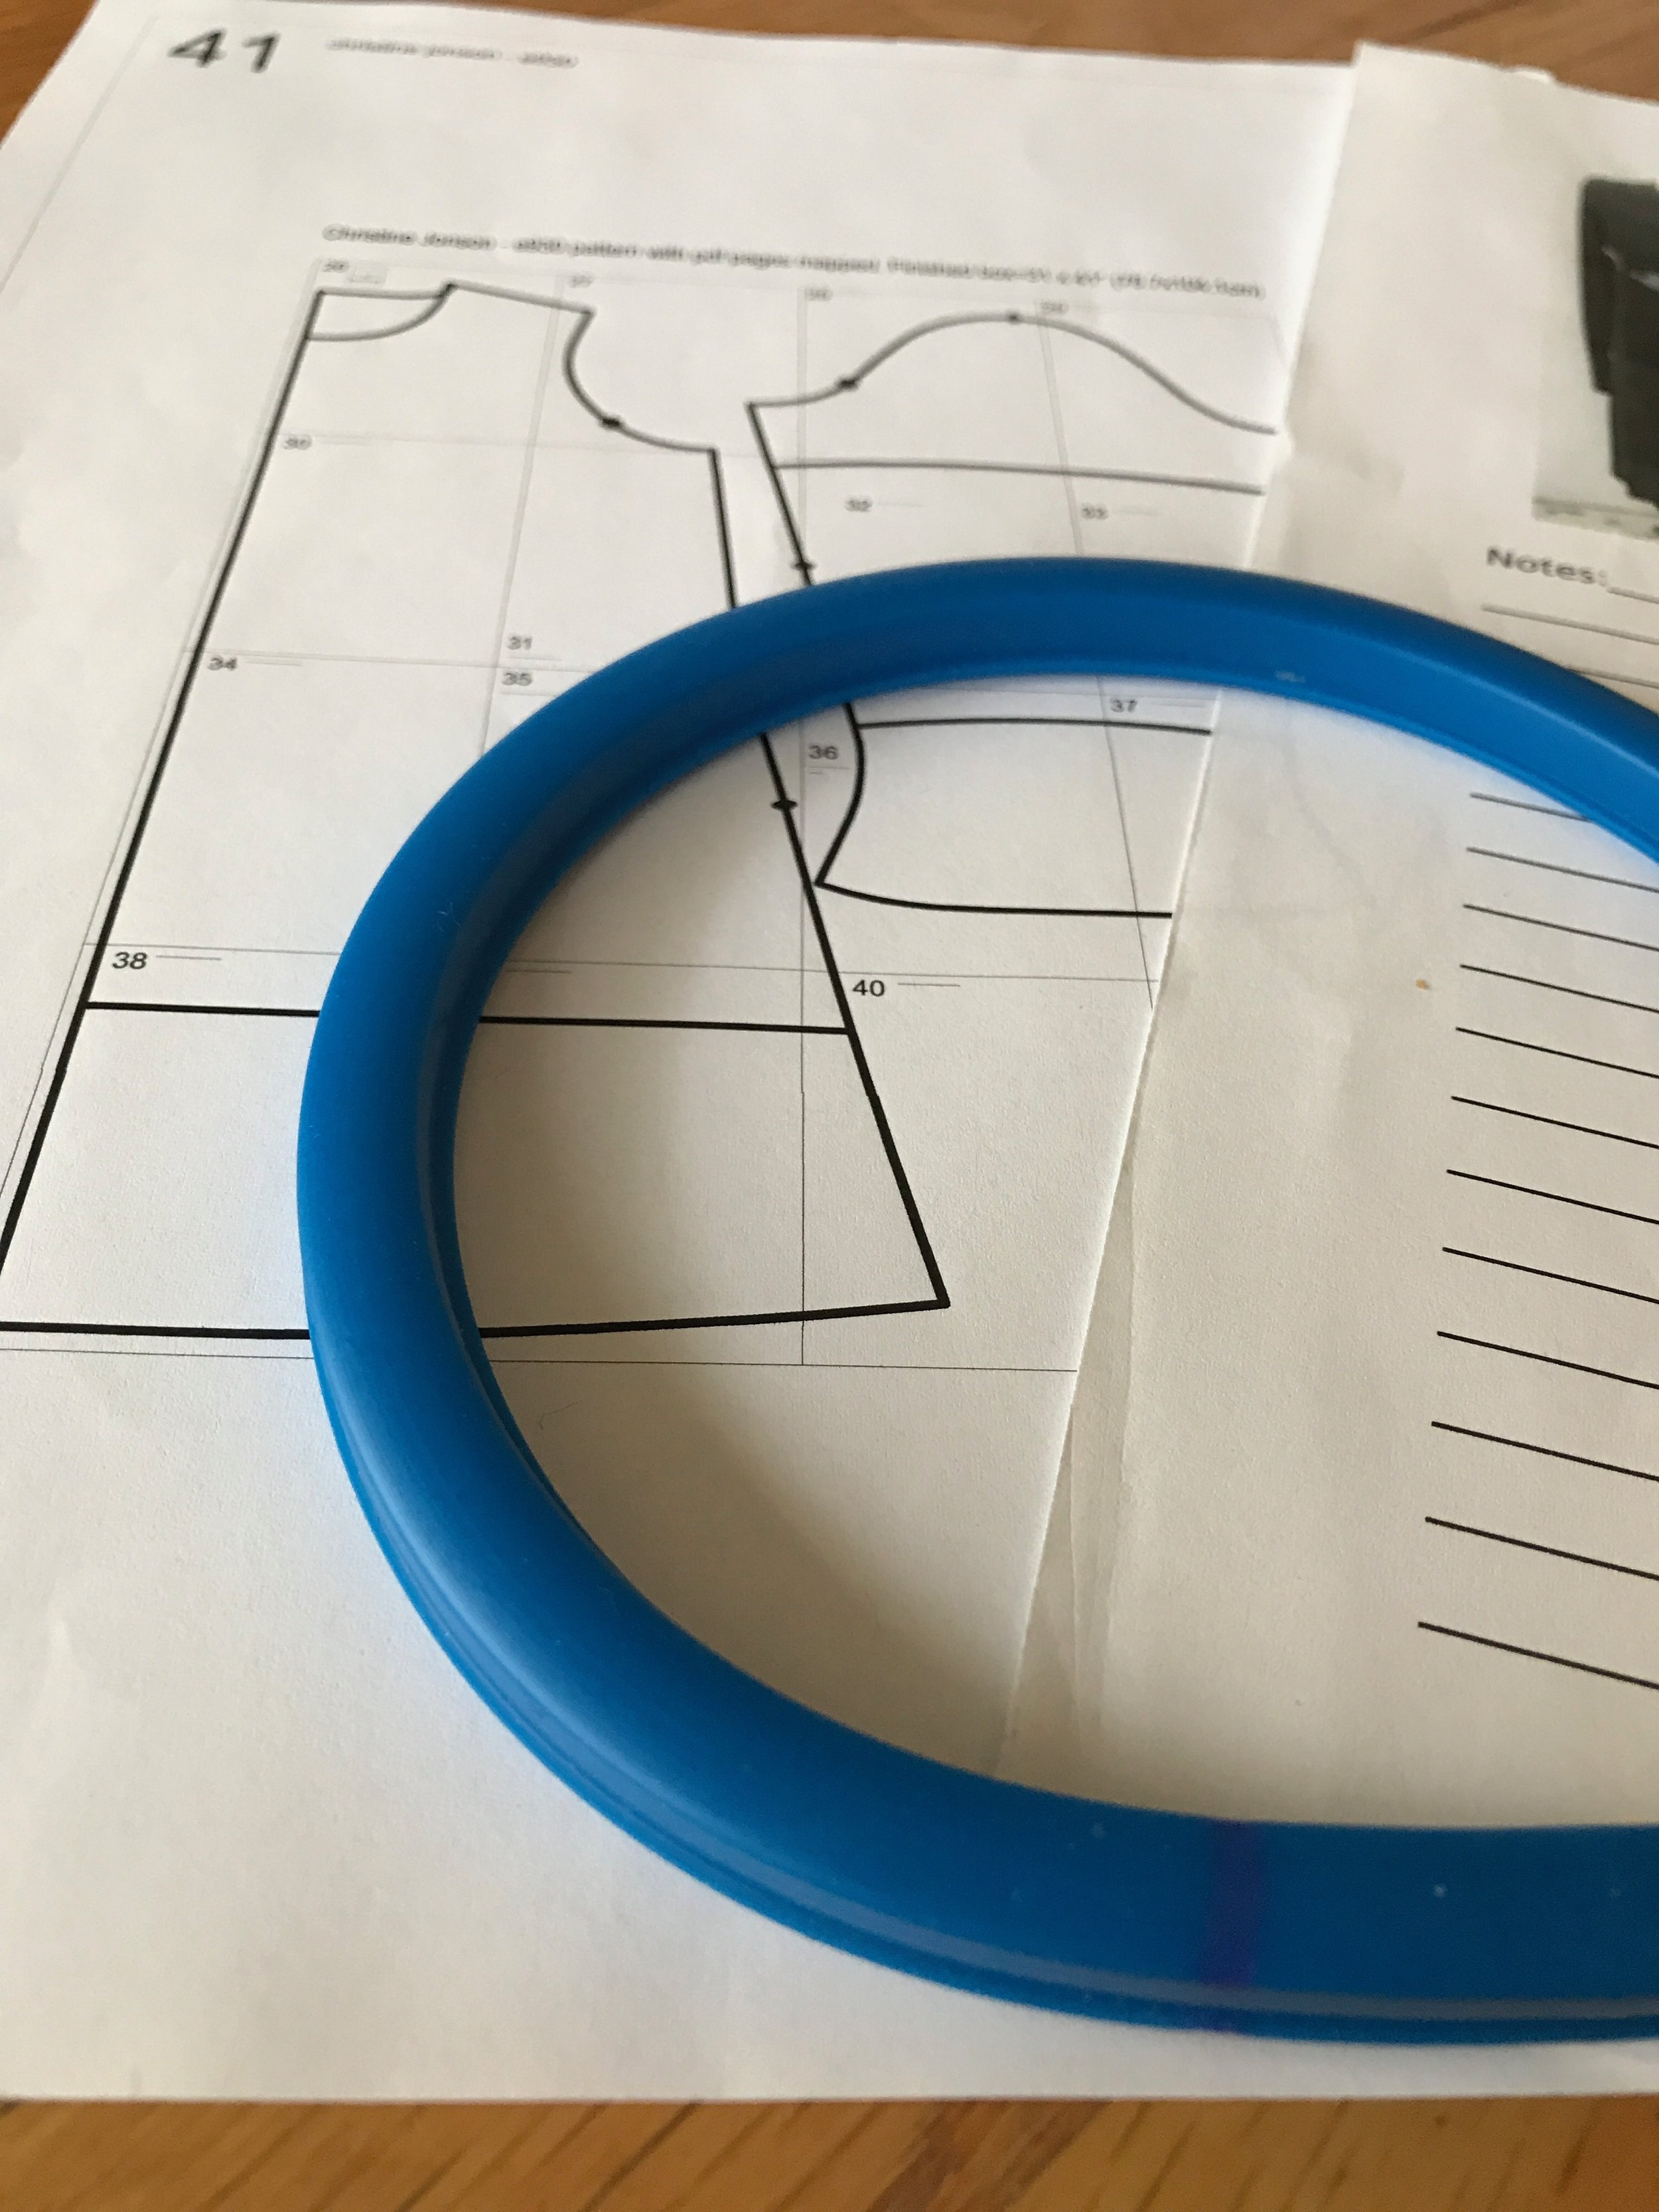 Alterning a neckline on a sewing pattern to match a favorite tee